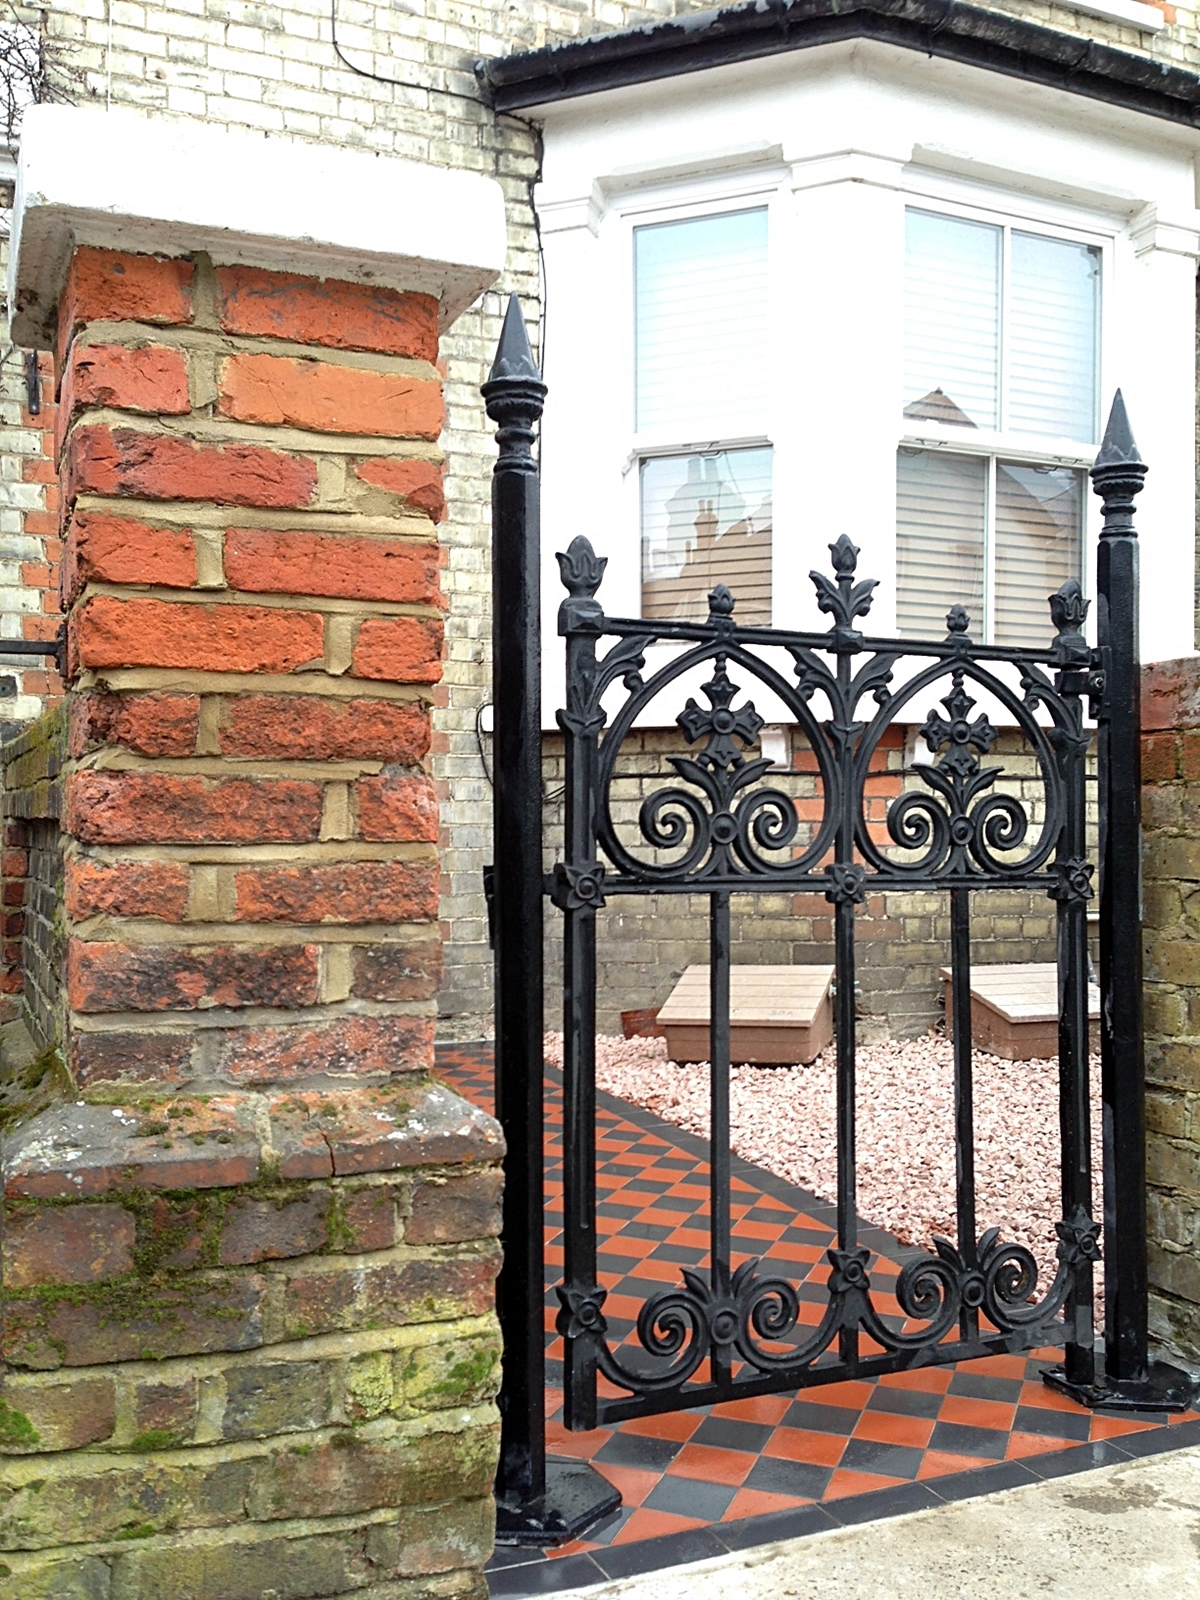 cast iron gate brick wall black and red victroian mosaic surbition kingston wimbledon london